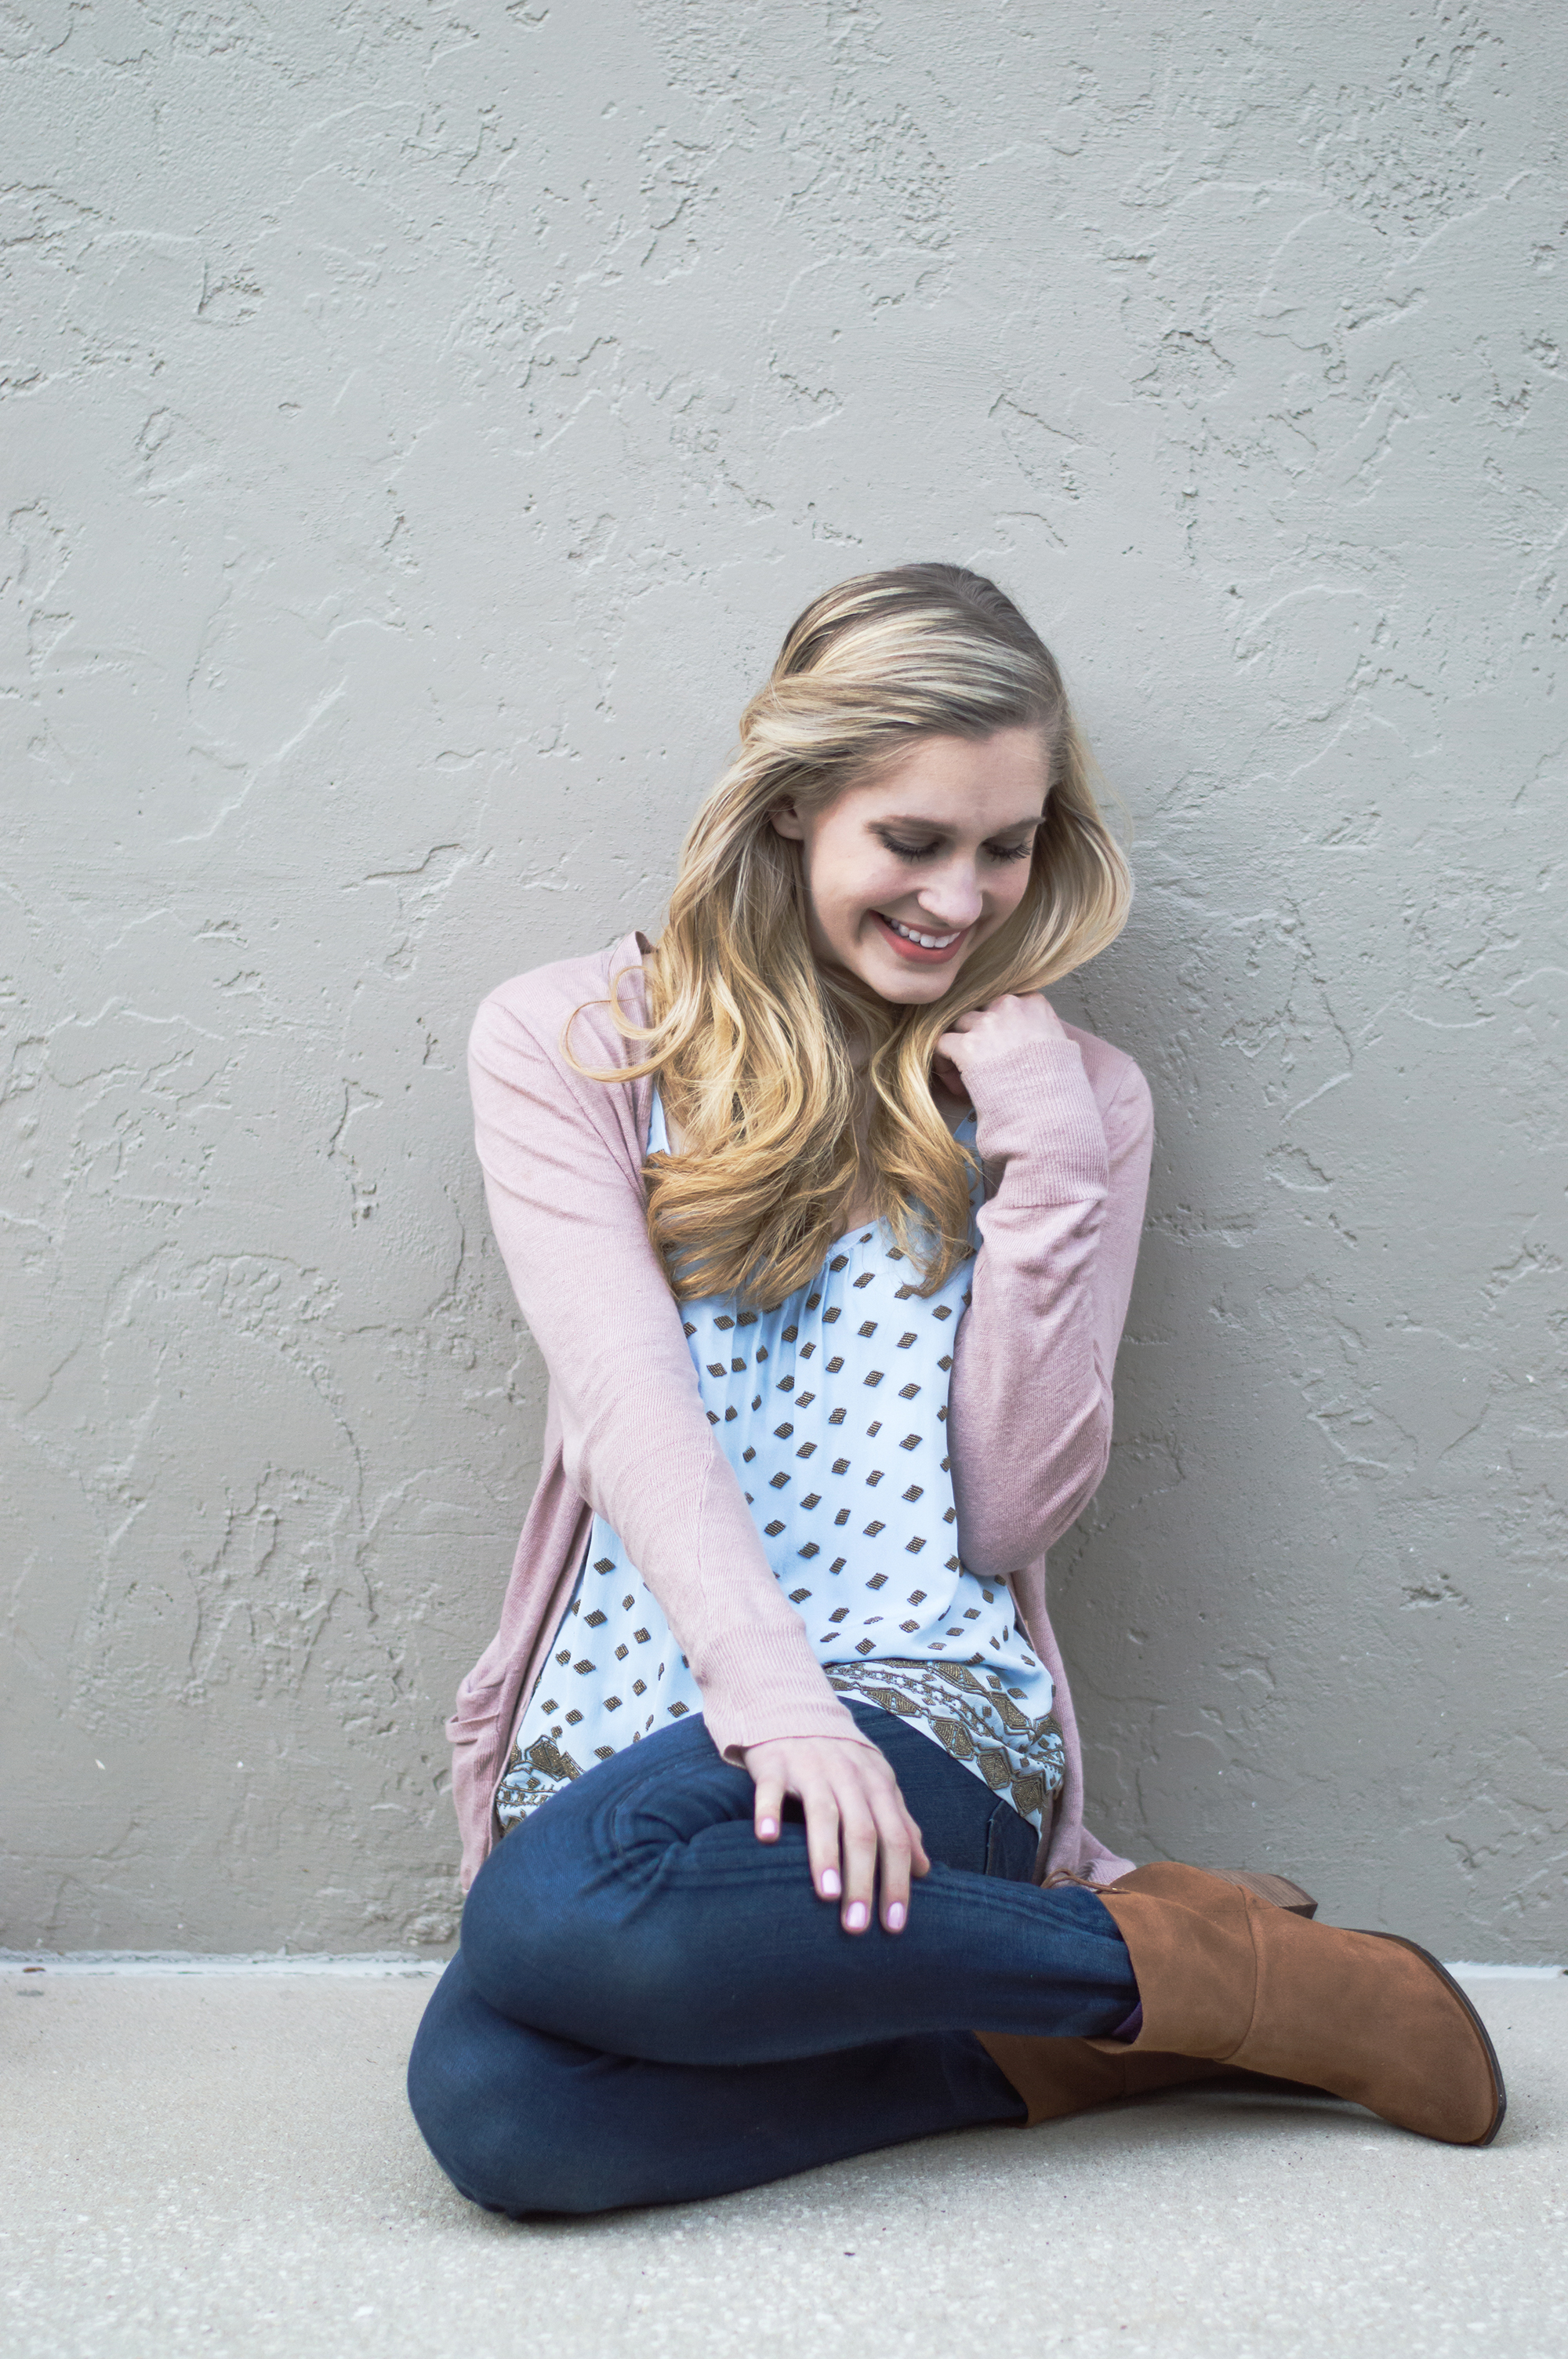 a993467323 Spring is Coming Early in this Pastel Blue Tank - Styelled